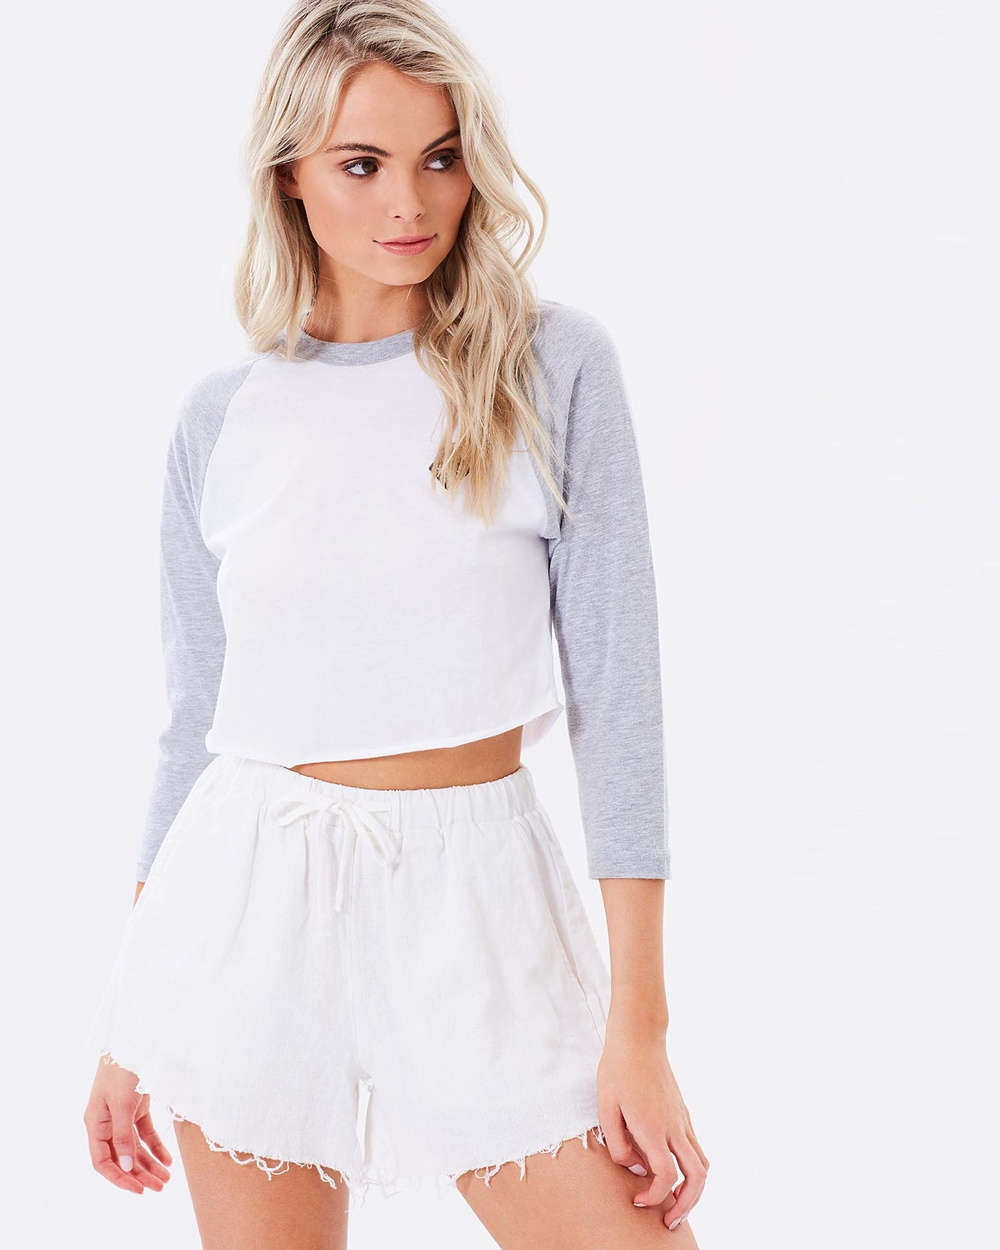 Society & Co Raglan Cropped tops White Raglan